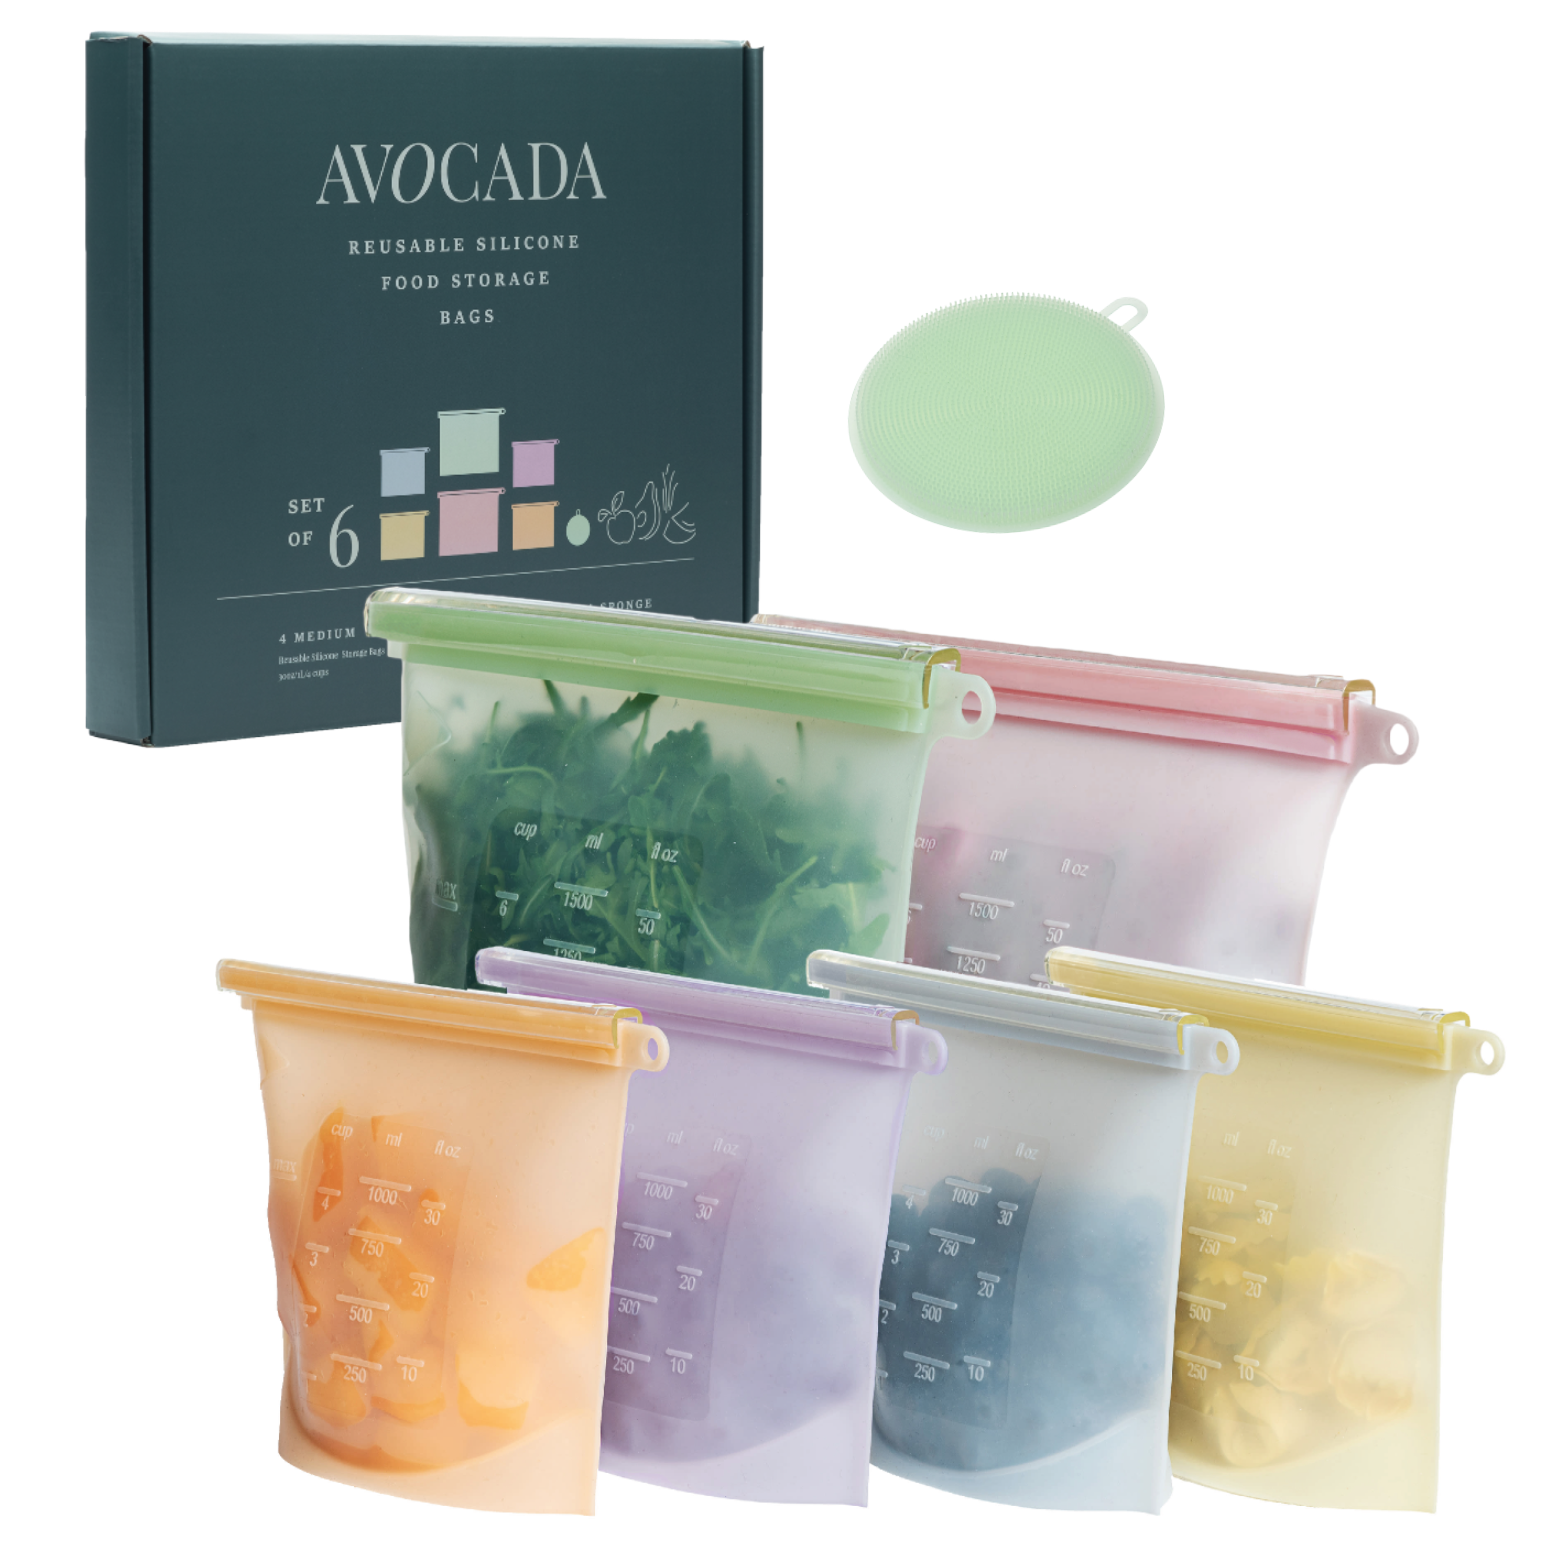 Reusable Silicone Food Storage Bags By Avocada and Sponge